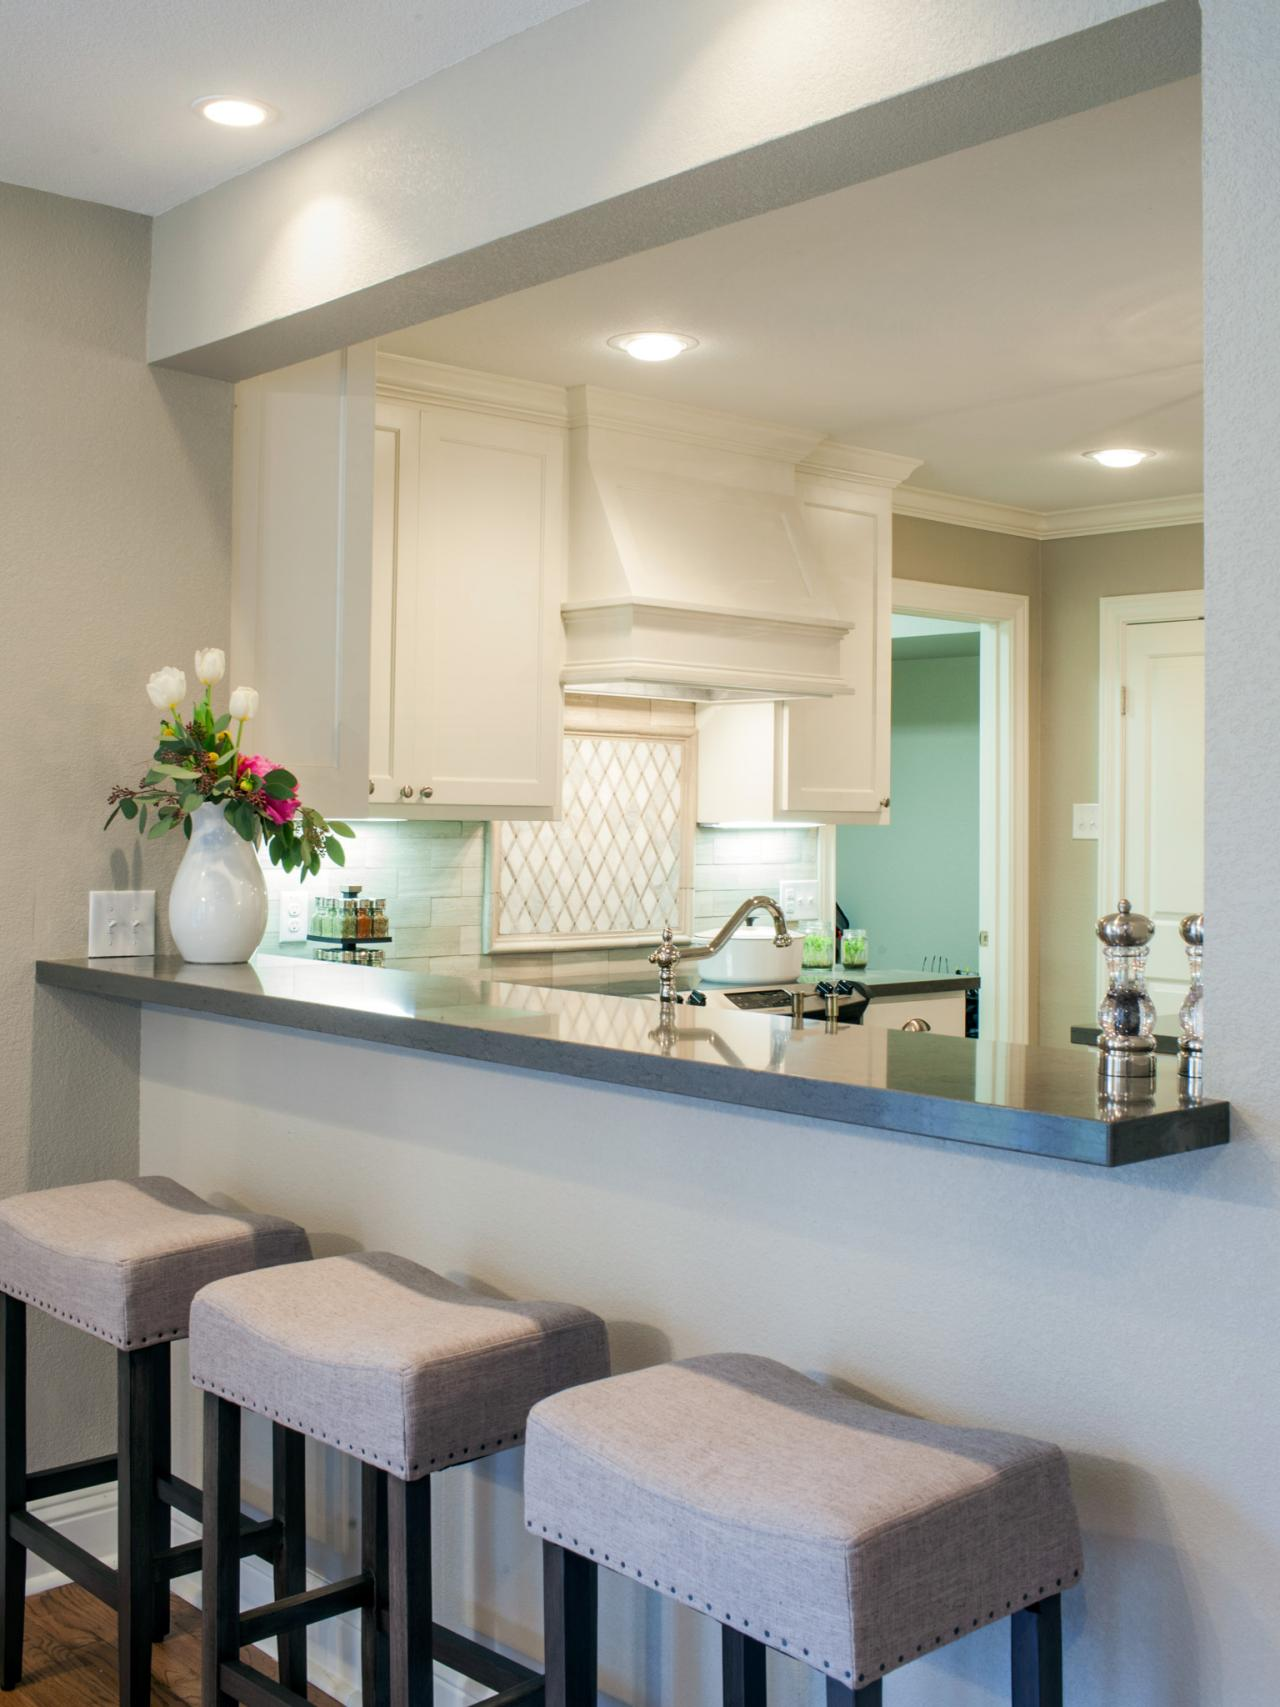 Ideas To Decorate Galley Kitchen on great room ideas, dining room ideas, living room ideas, galley kitchens before and after, galley living room, pantry ideas, garage ideas, bedroom ideas, loft ideas, deck ideas, utility room ideas,